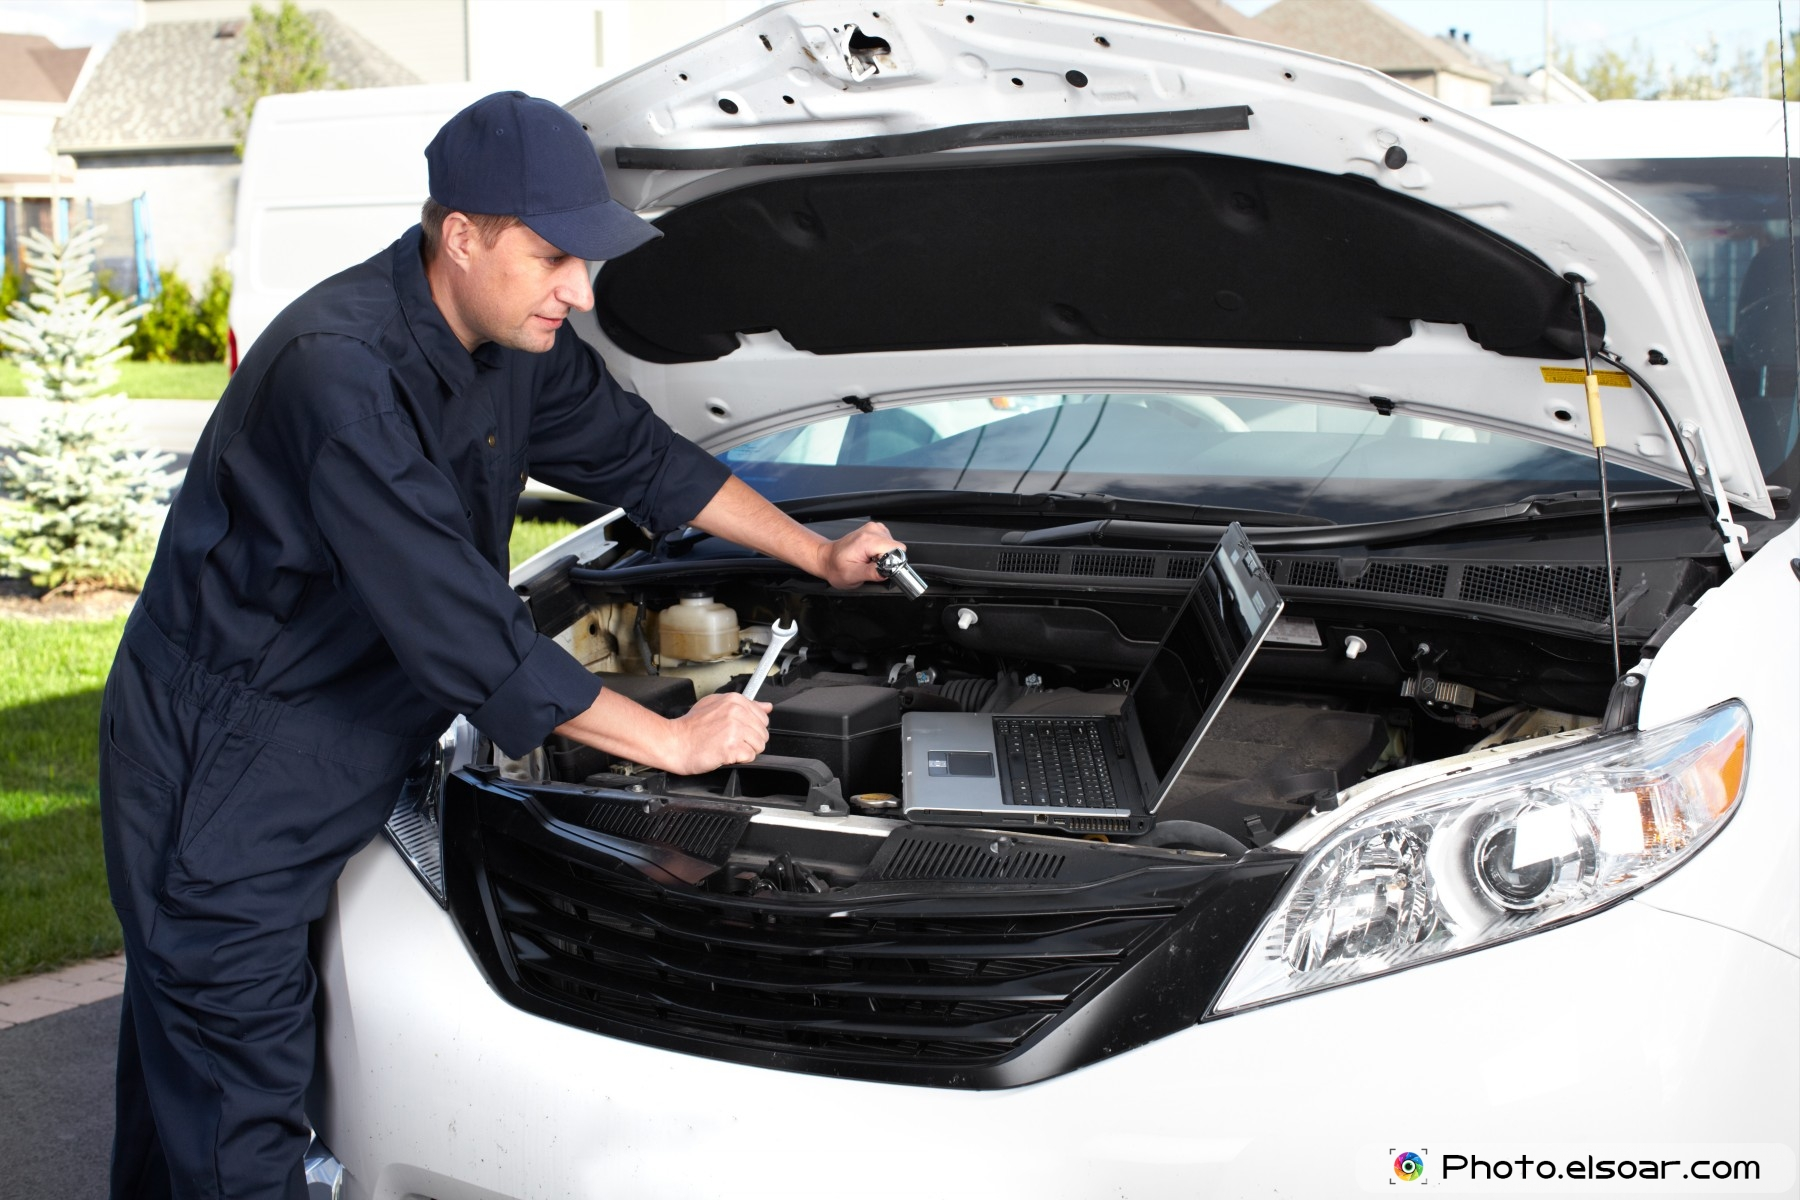 Services stations auto repair tire wheel installation Auto motor repair